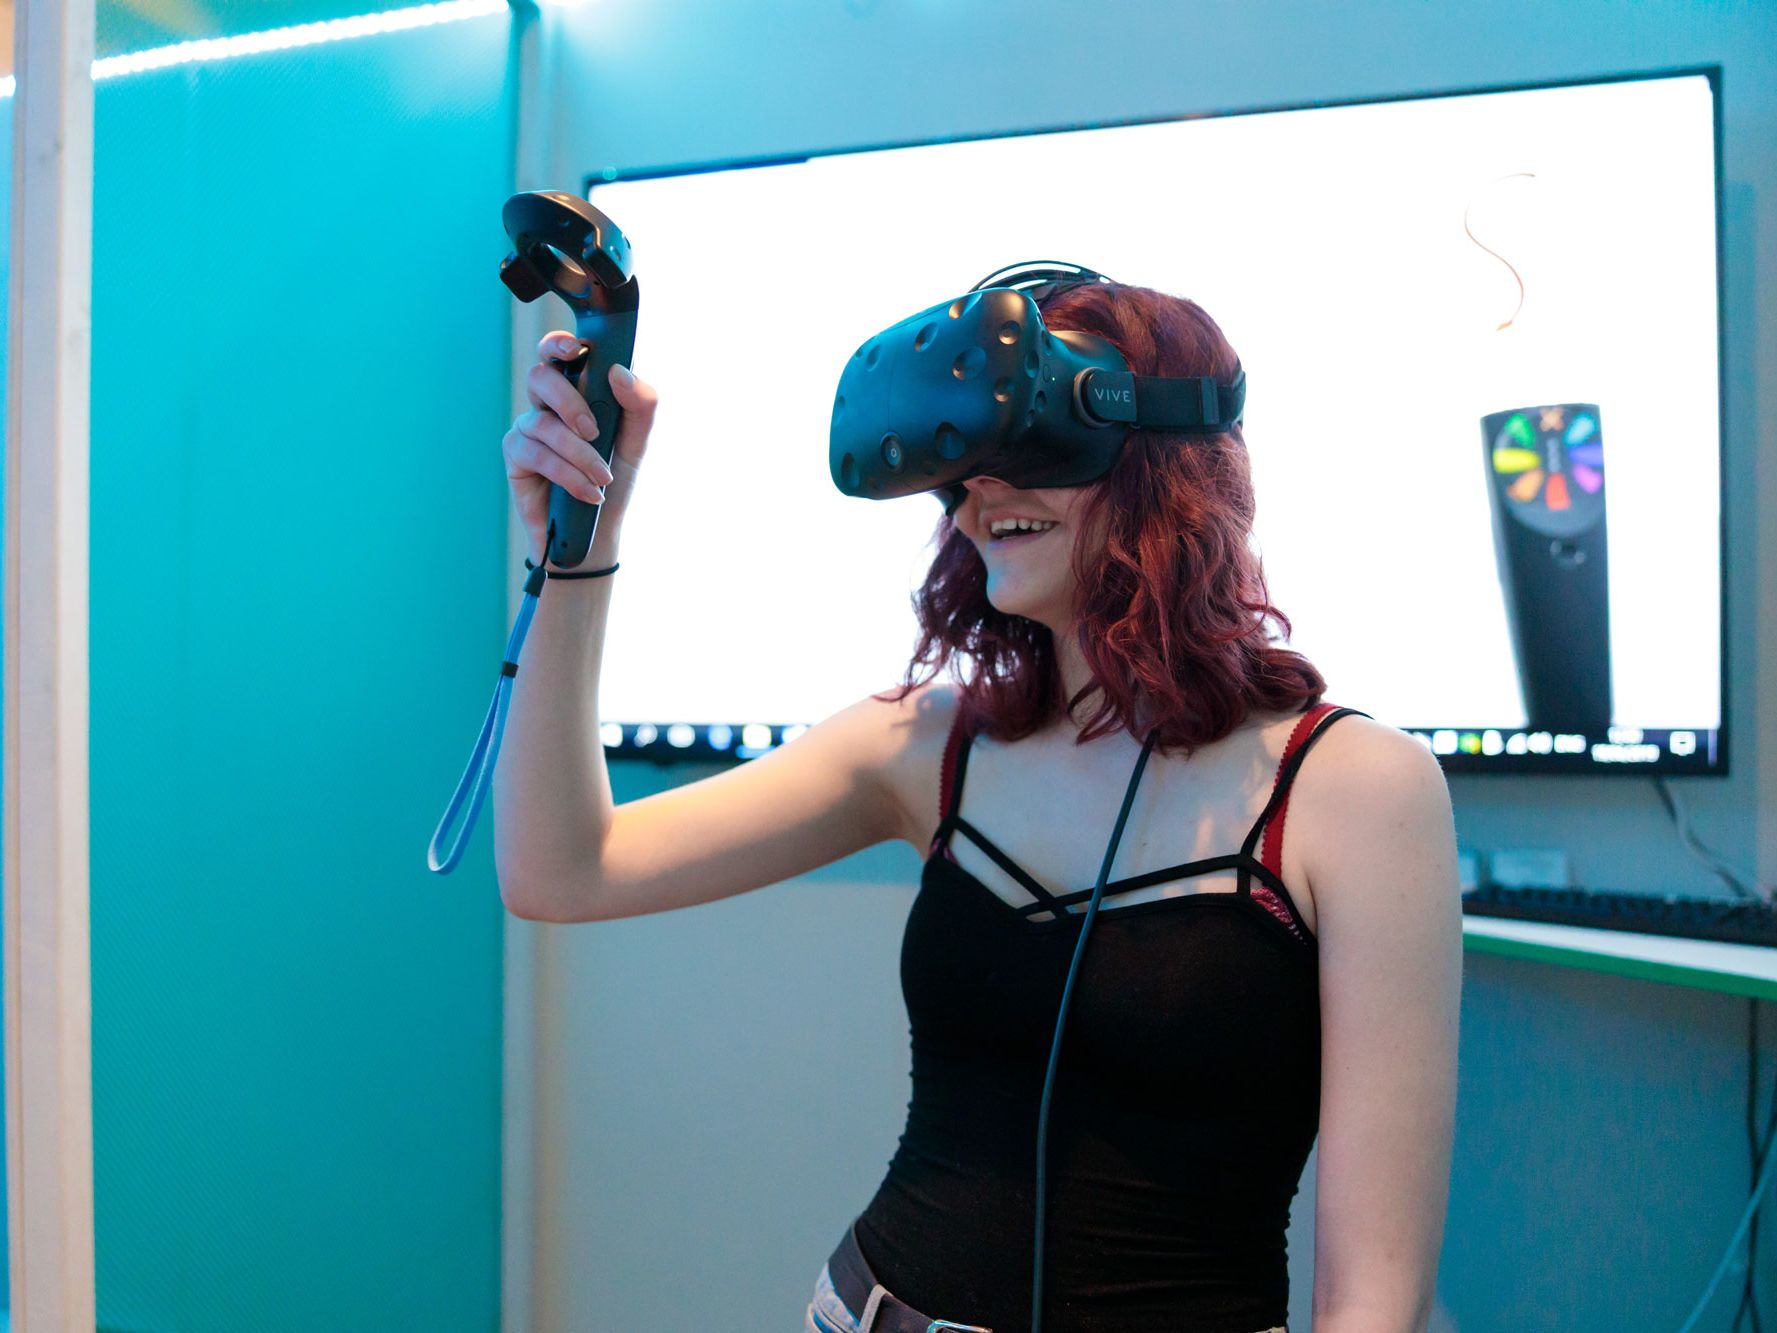 A girl in a black vest stop stands against a blue background wearing a VR headset and holding the controller in her hand, looking upwards.